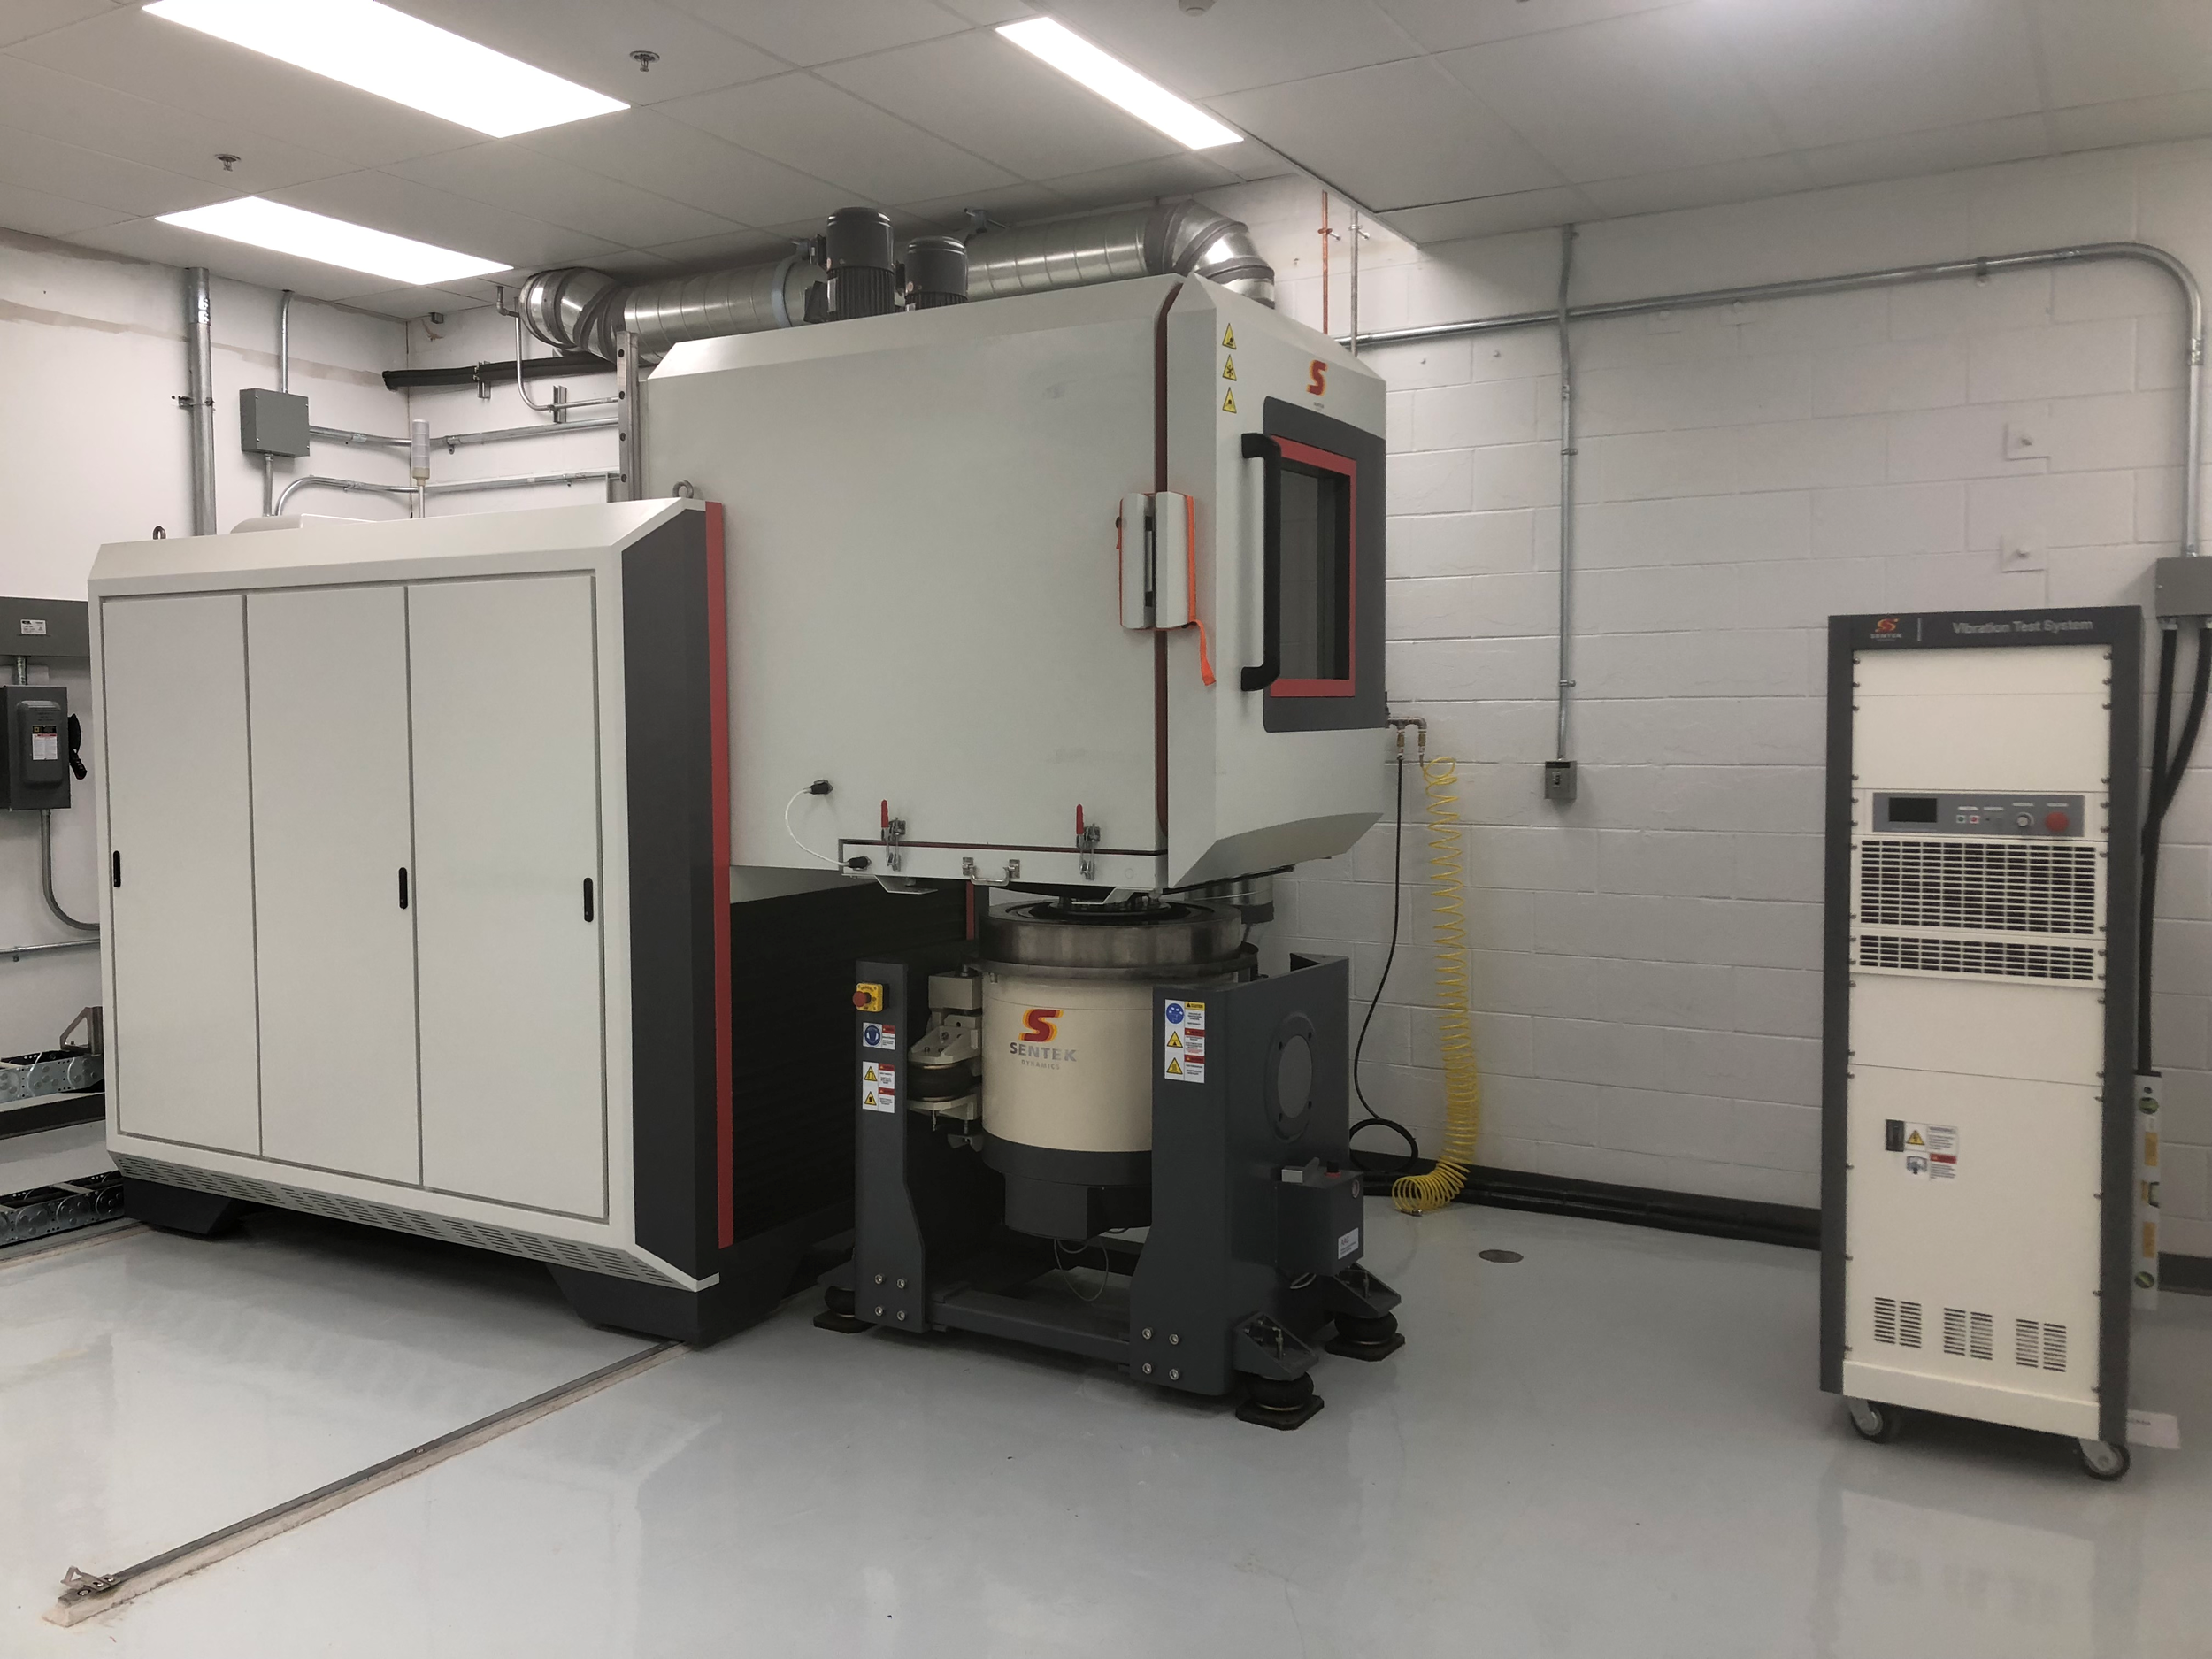 Sentek Dynamics' THV Series Chamber for Combined Temperature, Humidity and Vibration Testing